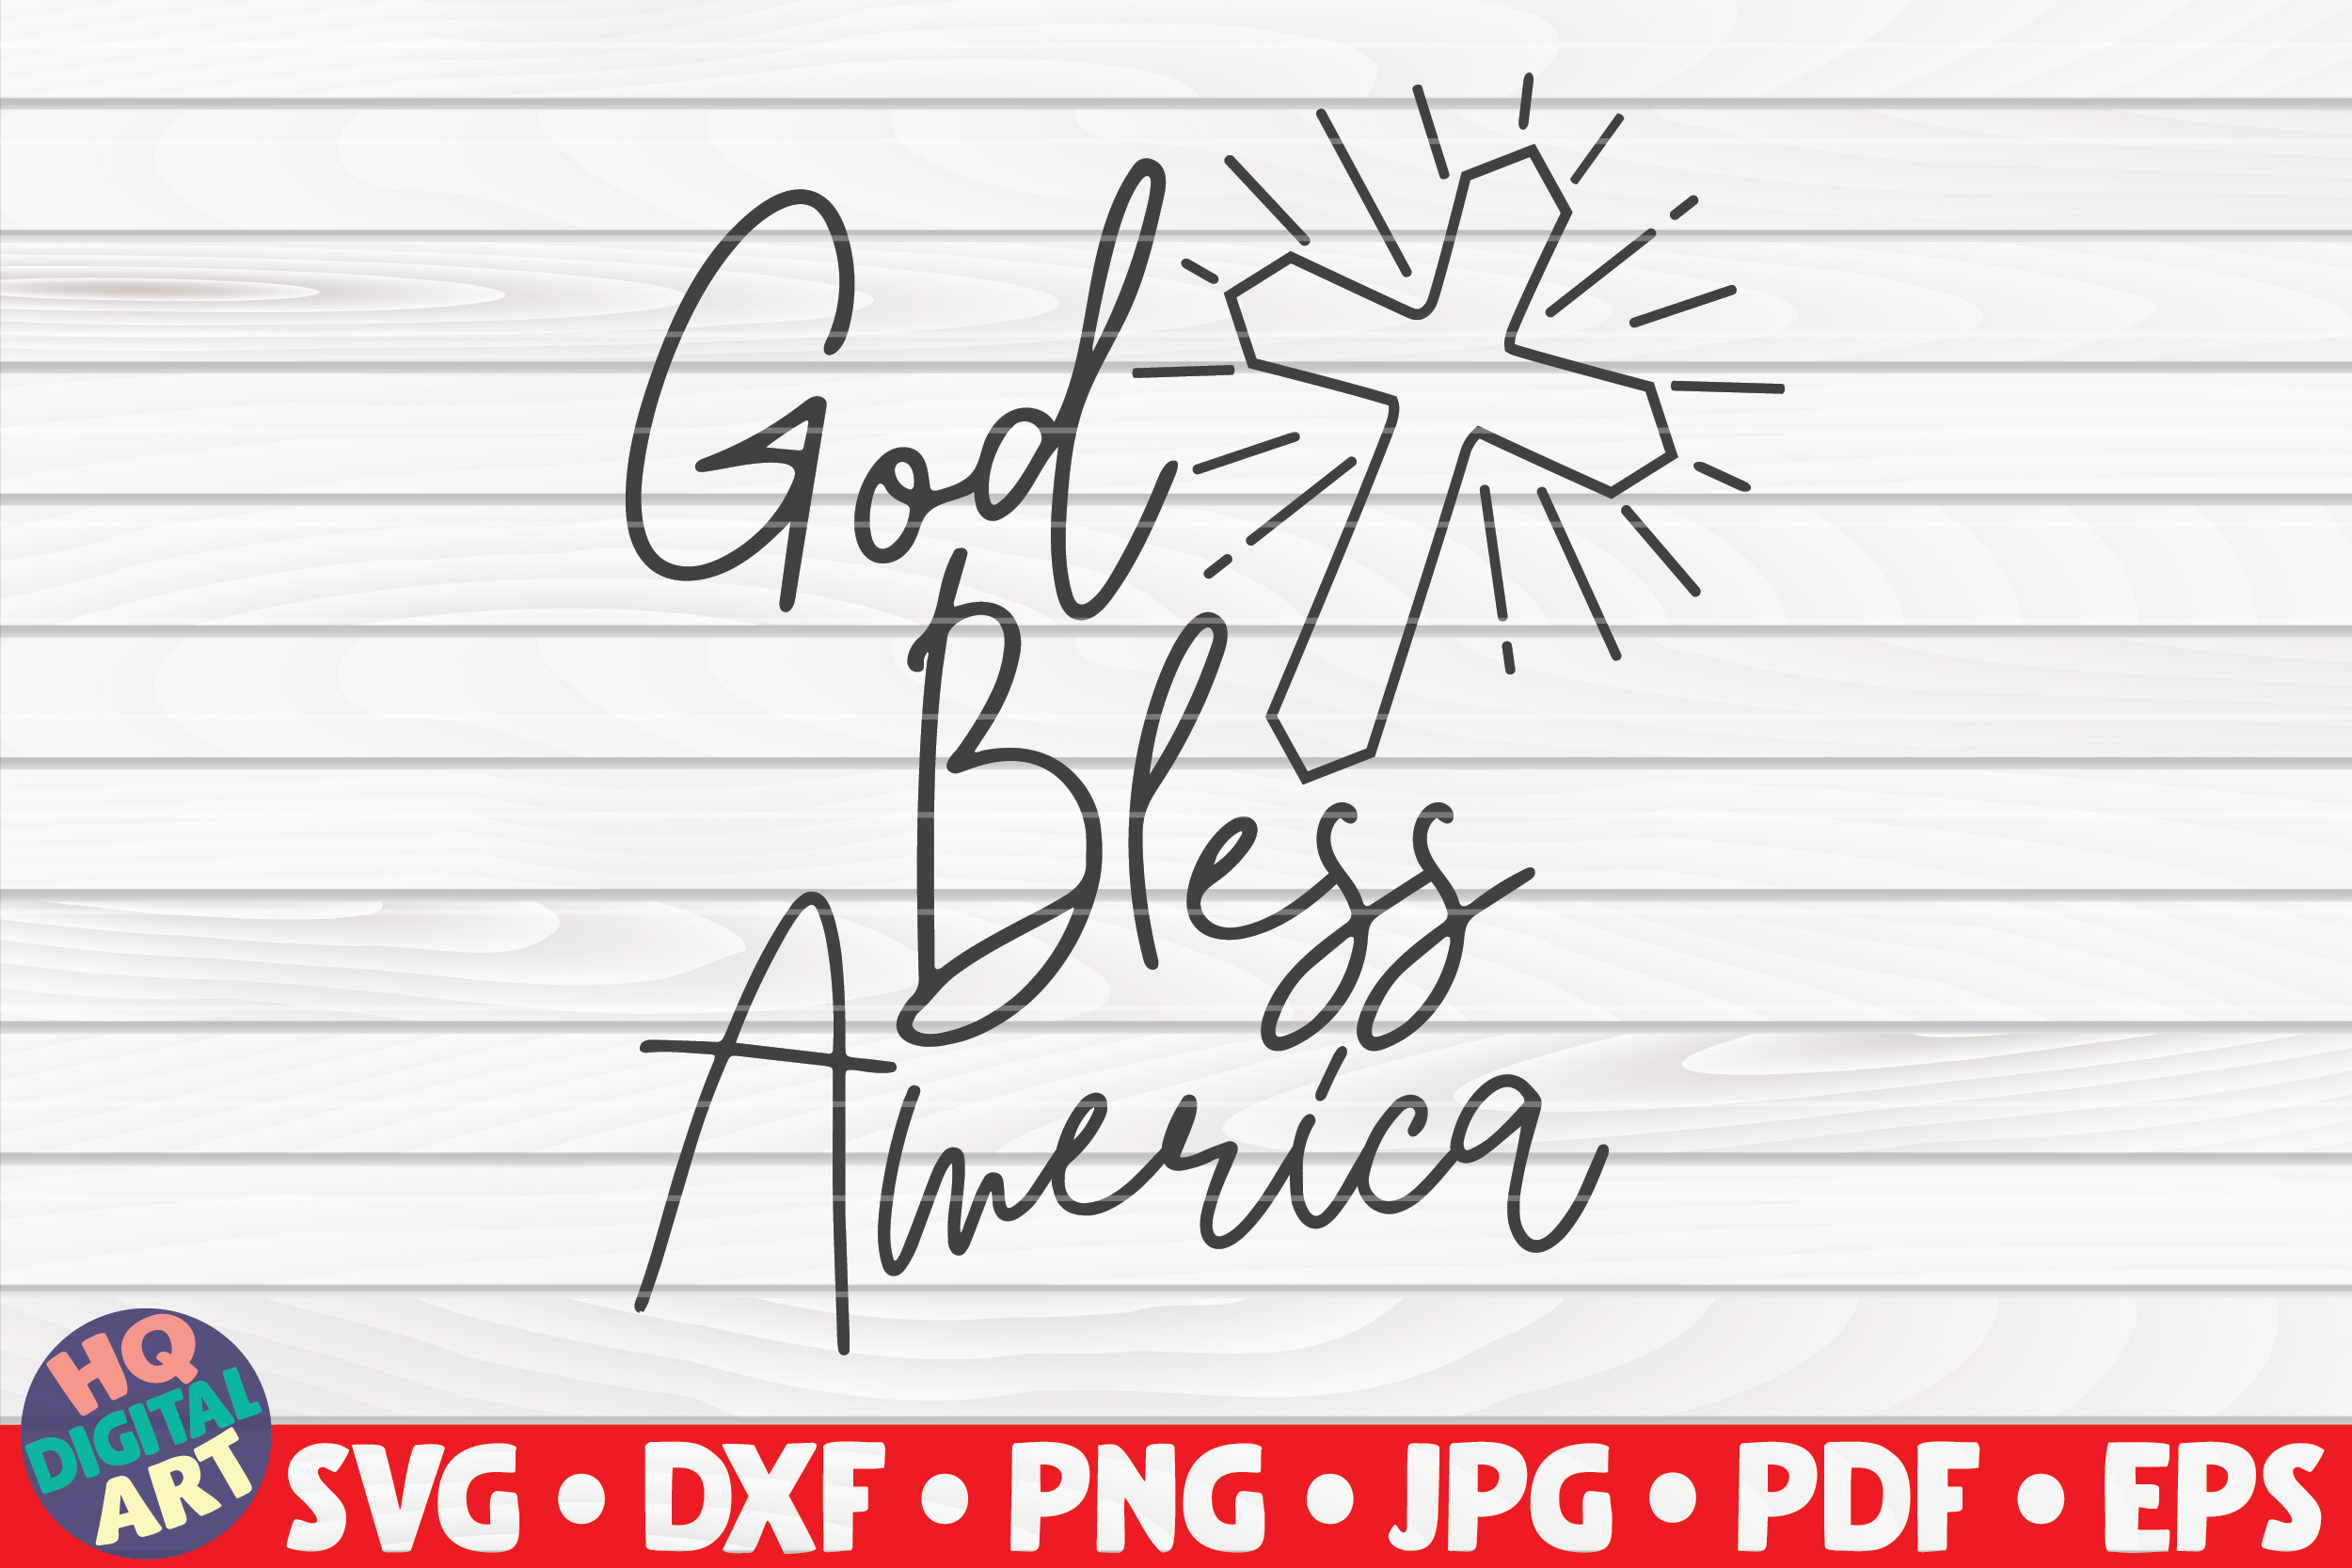 Download Free God Bless America 4th Of July Graphic By Mihaibadea95 for Cricut Explore, Silhouette and other cutting machines.